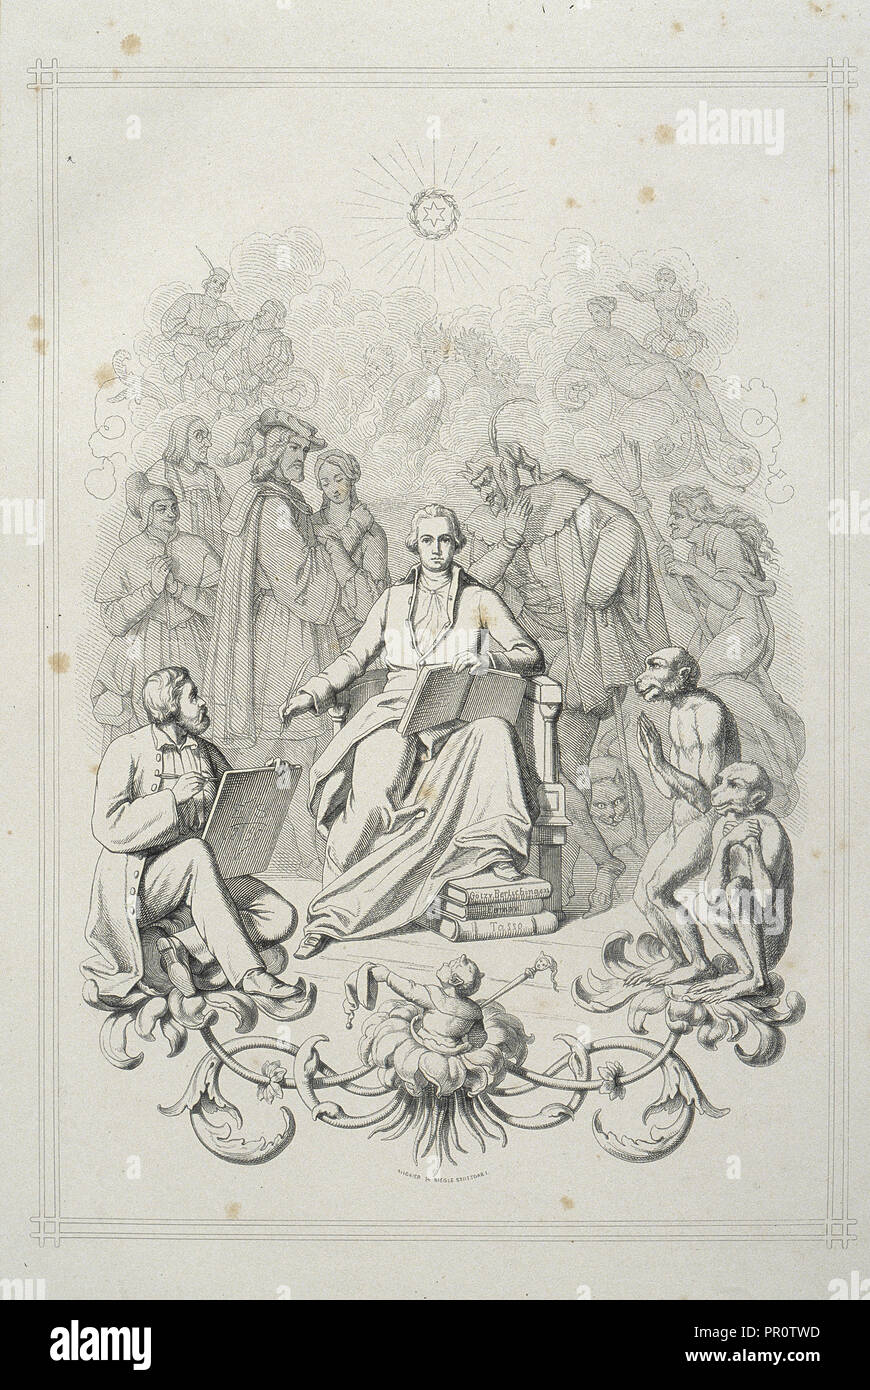 Frontispiece: portrait of Goethe with his characters, Faust: eine Tragödie von Goethe: erster Theil, Goethe, Johann Wolfgang von - Stock Image